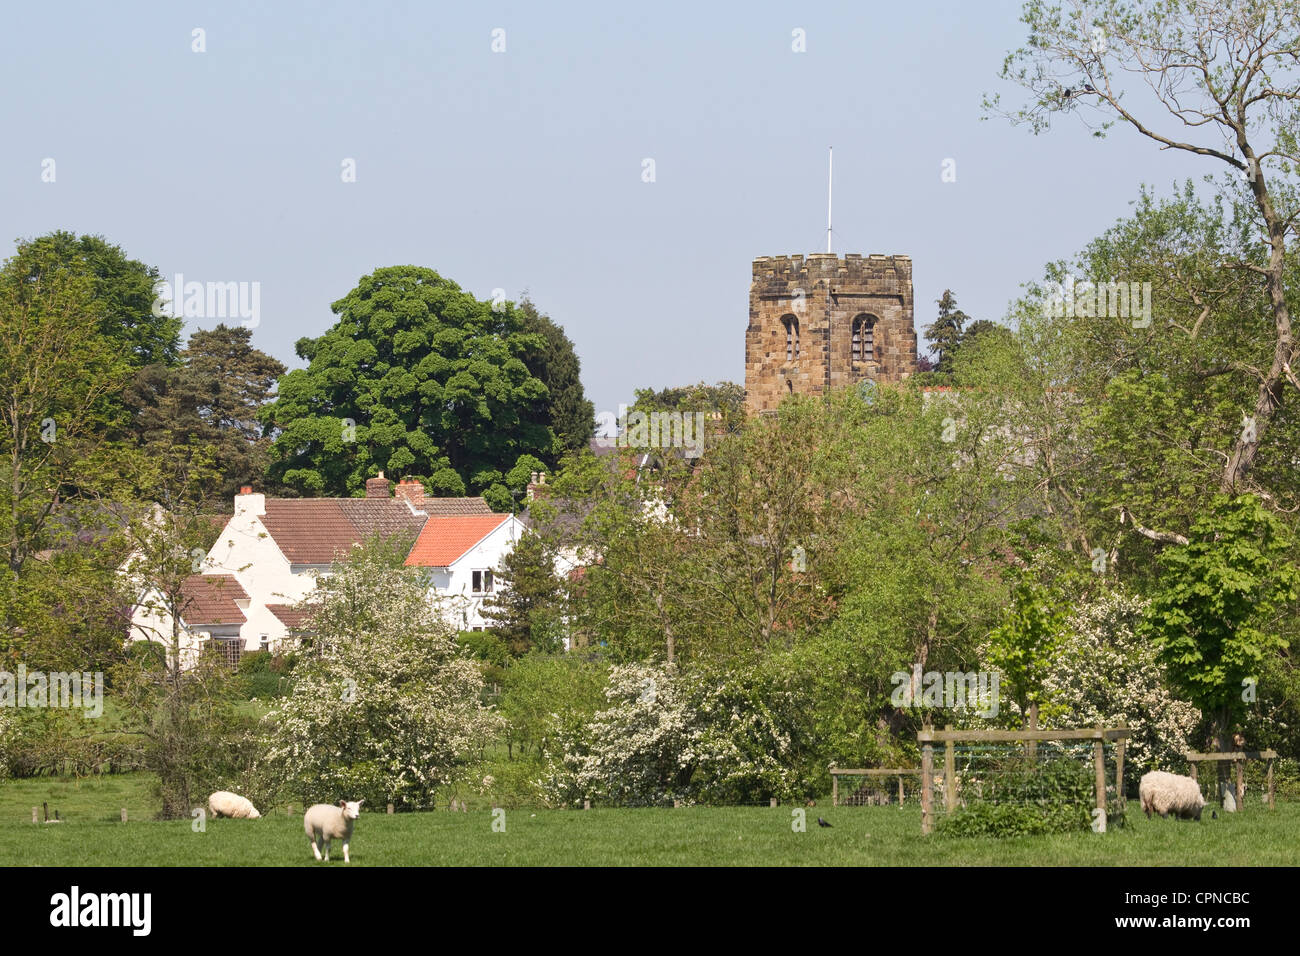 Kirby Wiske village in North Yorkshire situated on the River Wiske close to Thirsk and showing  St John the Baptist's - Stock Image